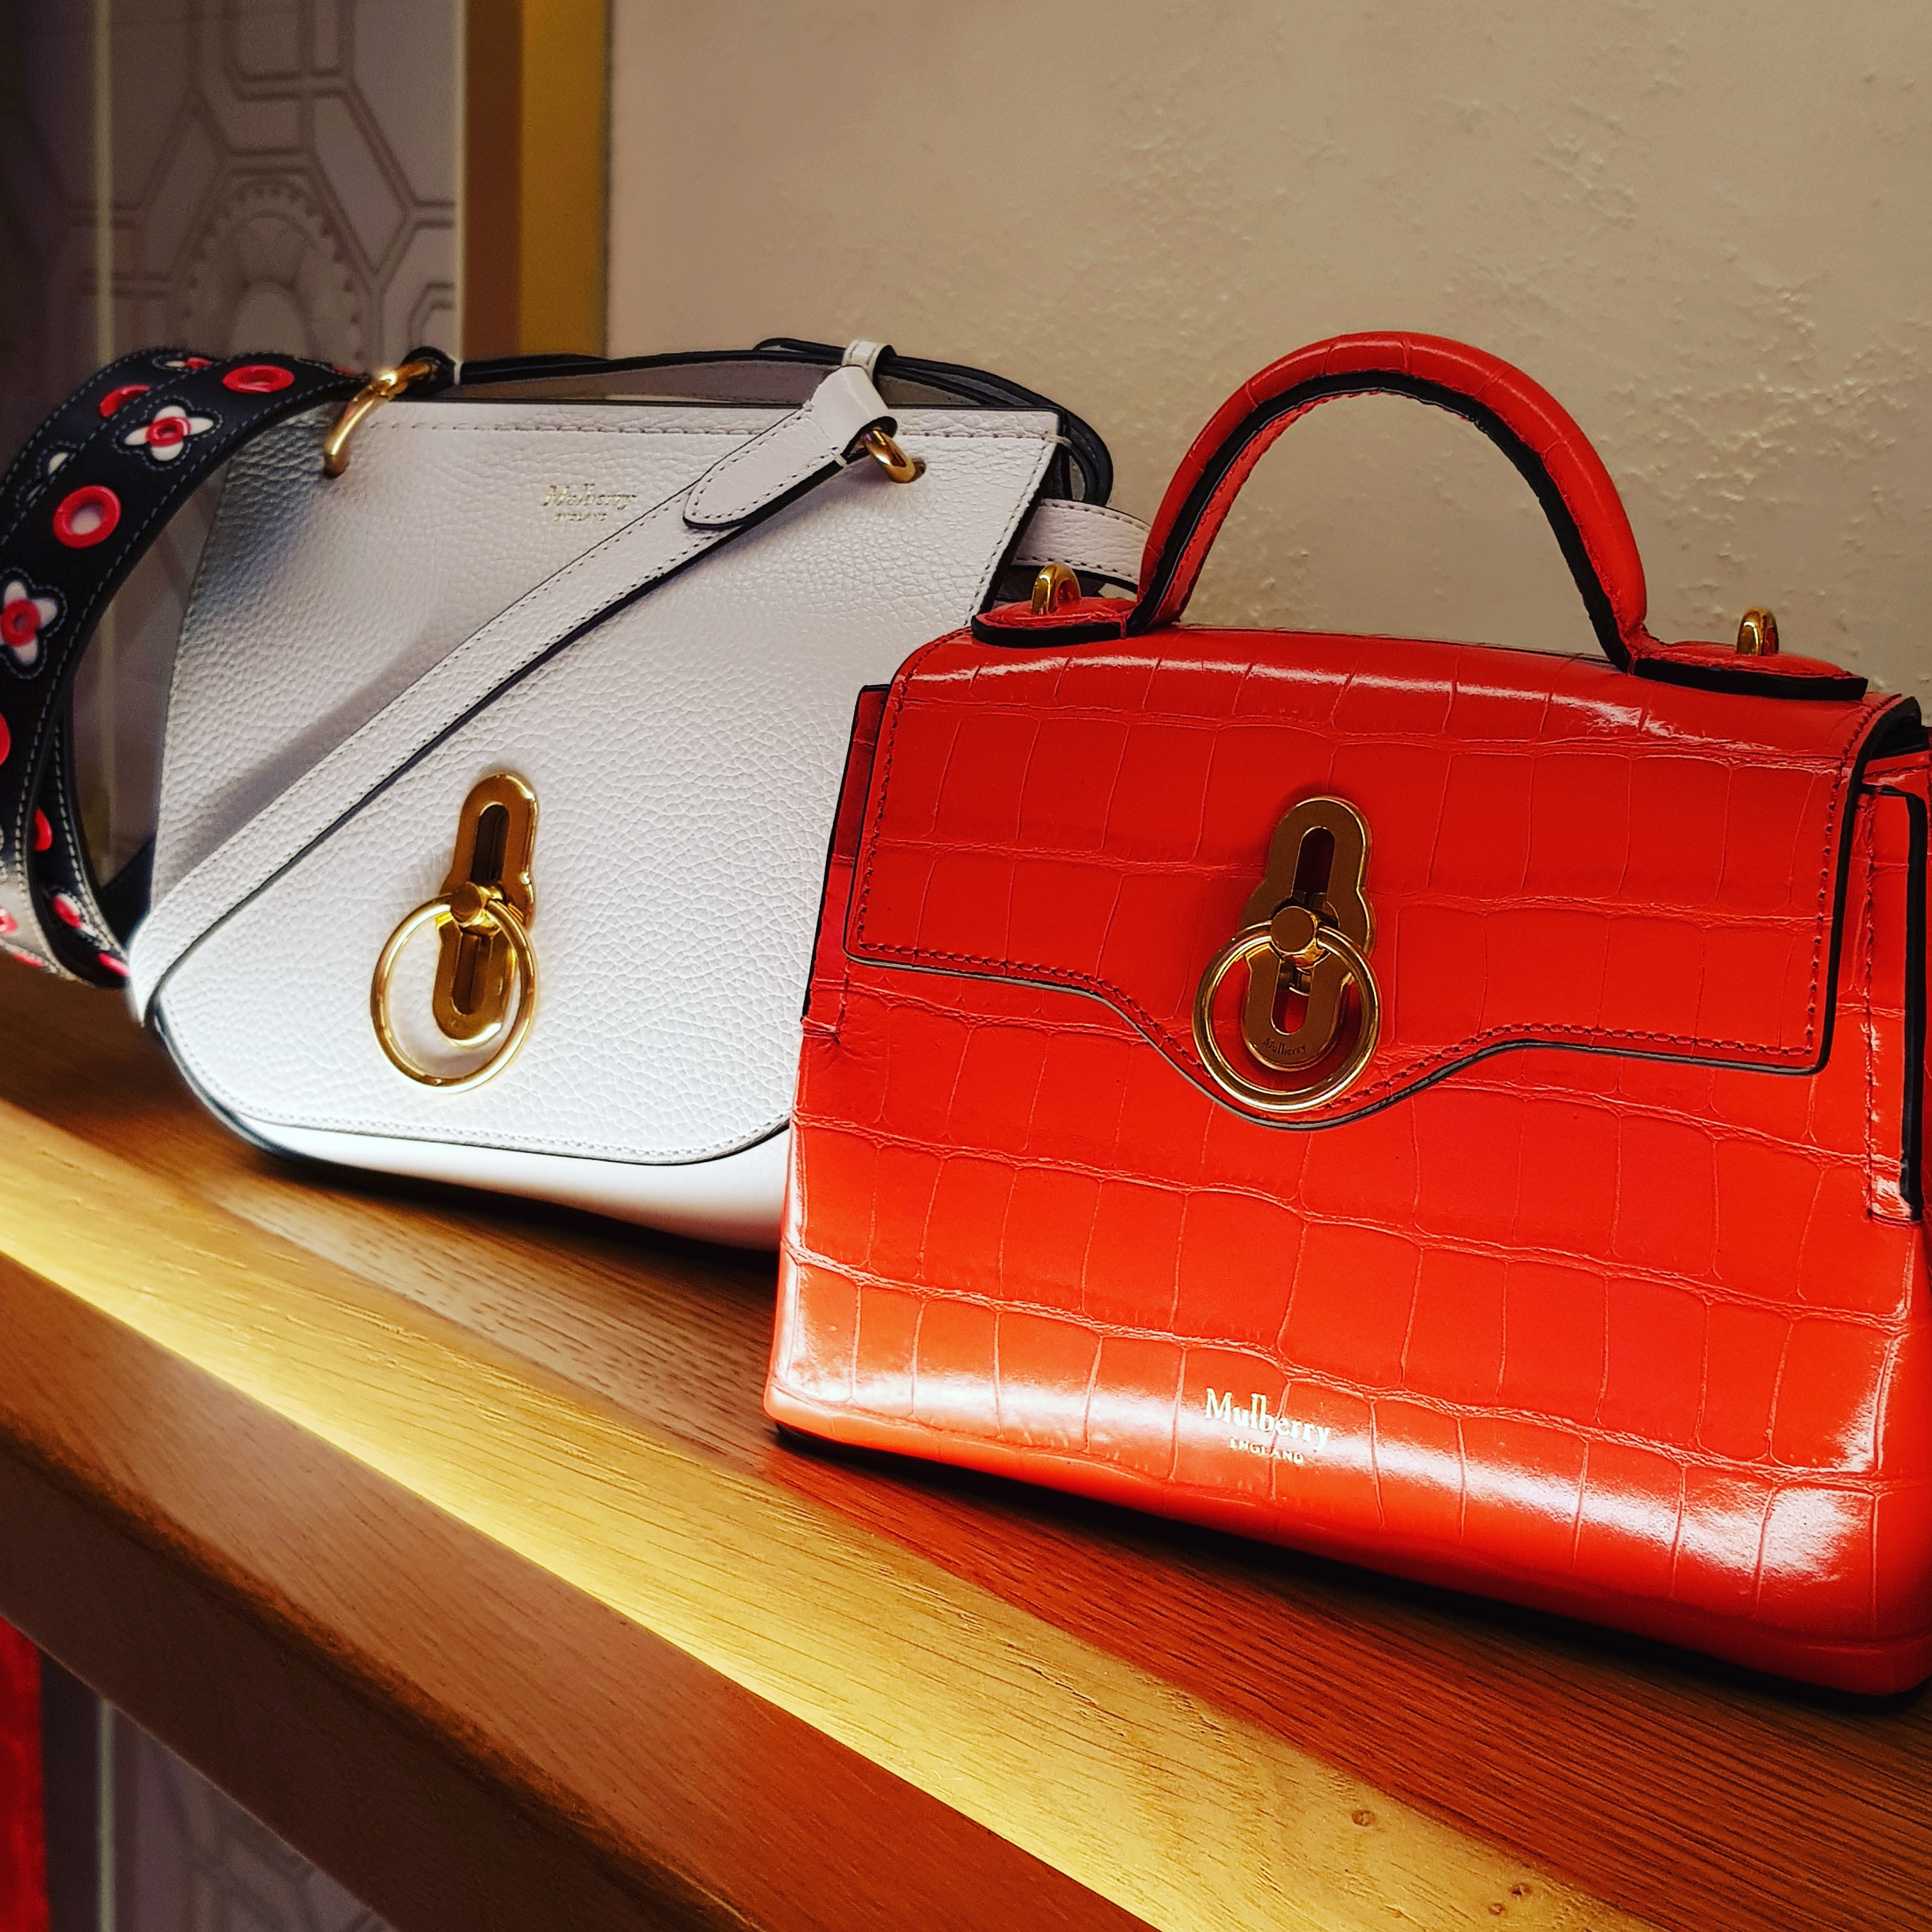 New season fashion bags for Spring and Summer 2019 from Mulberry including the hibiscus red top handle bag and white crossbody bag.